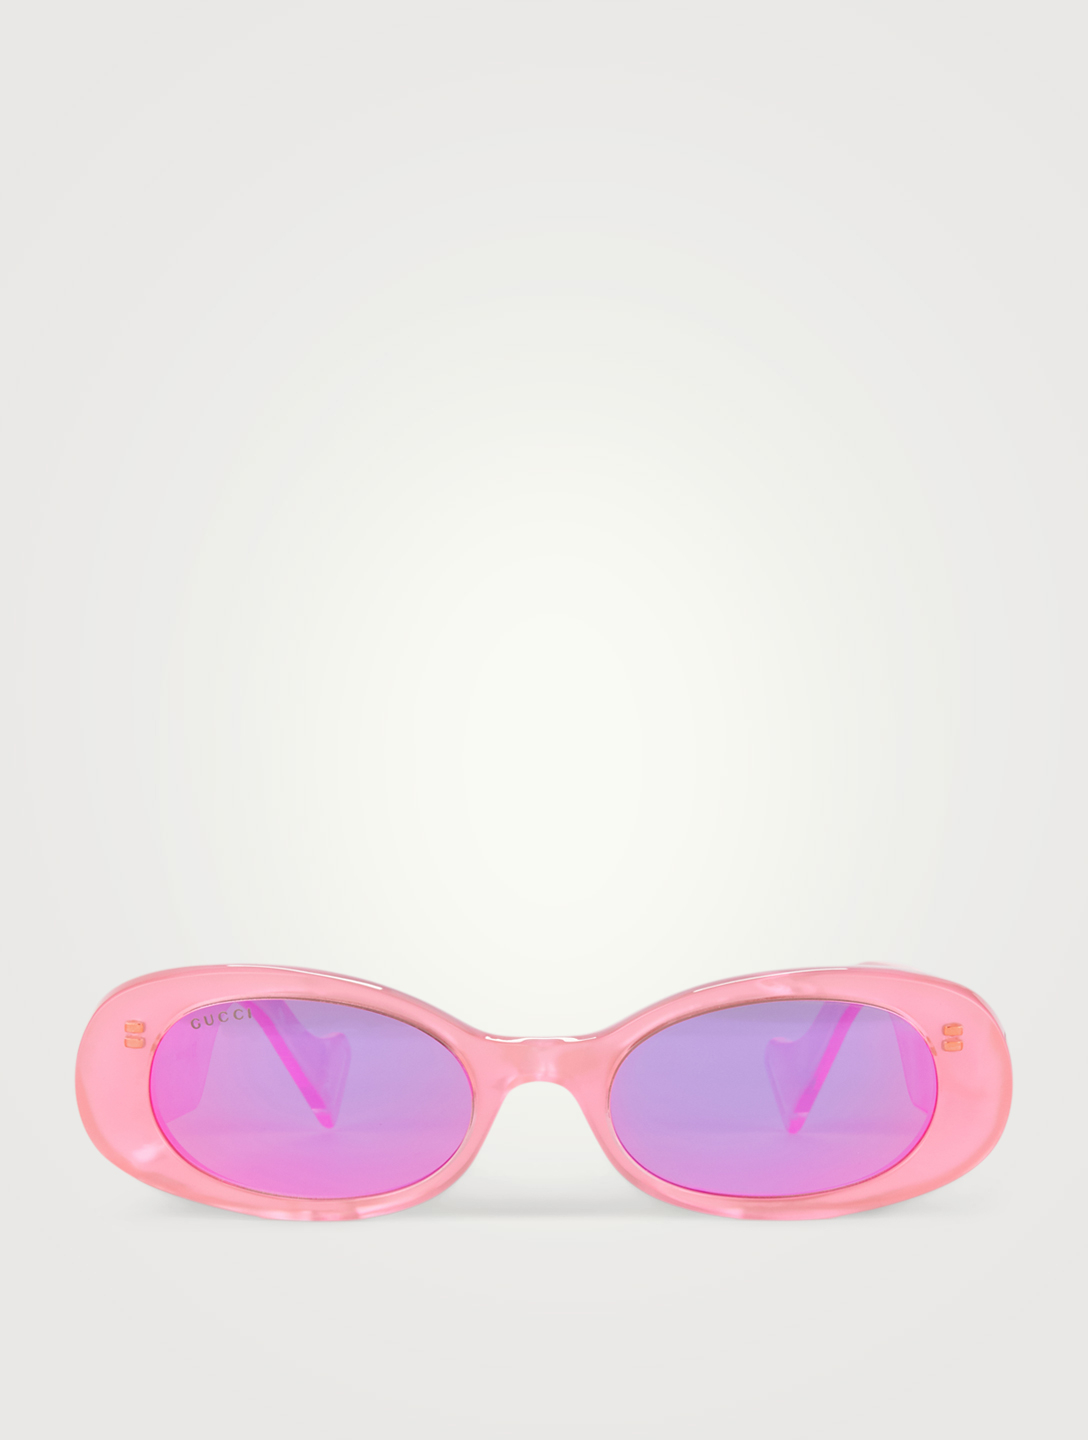 GUCCI Oval Sunglasses Women's Pink